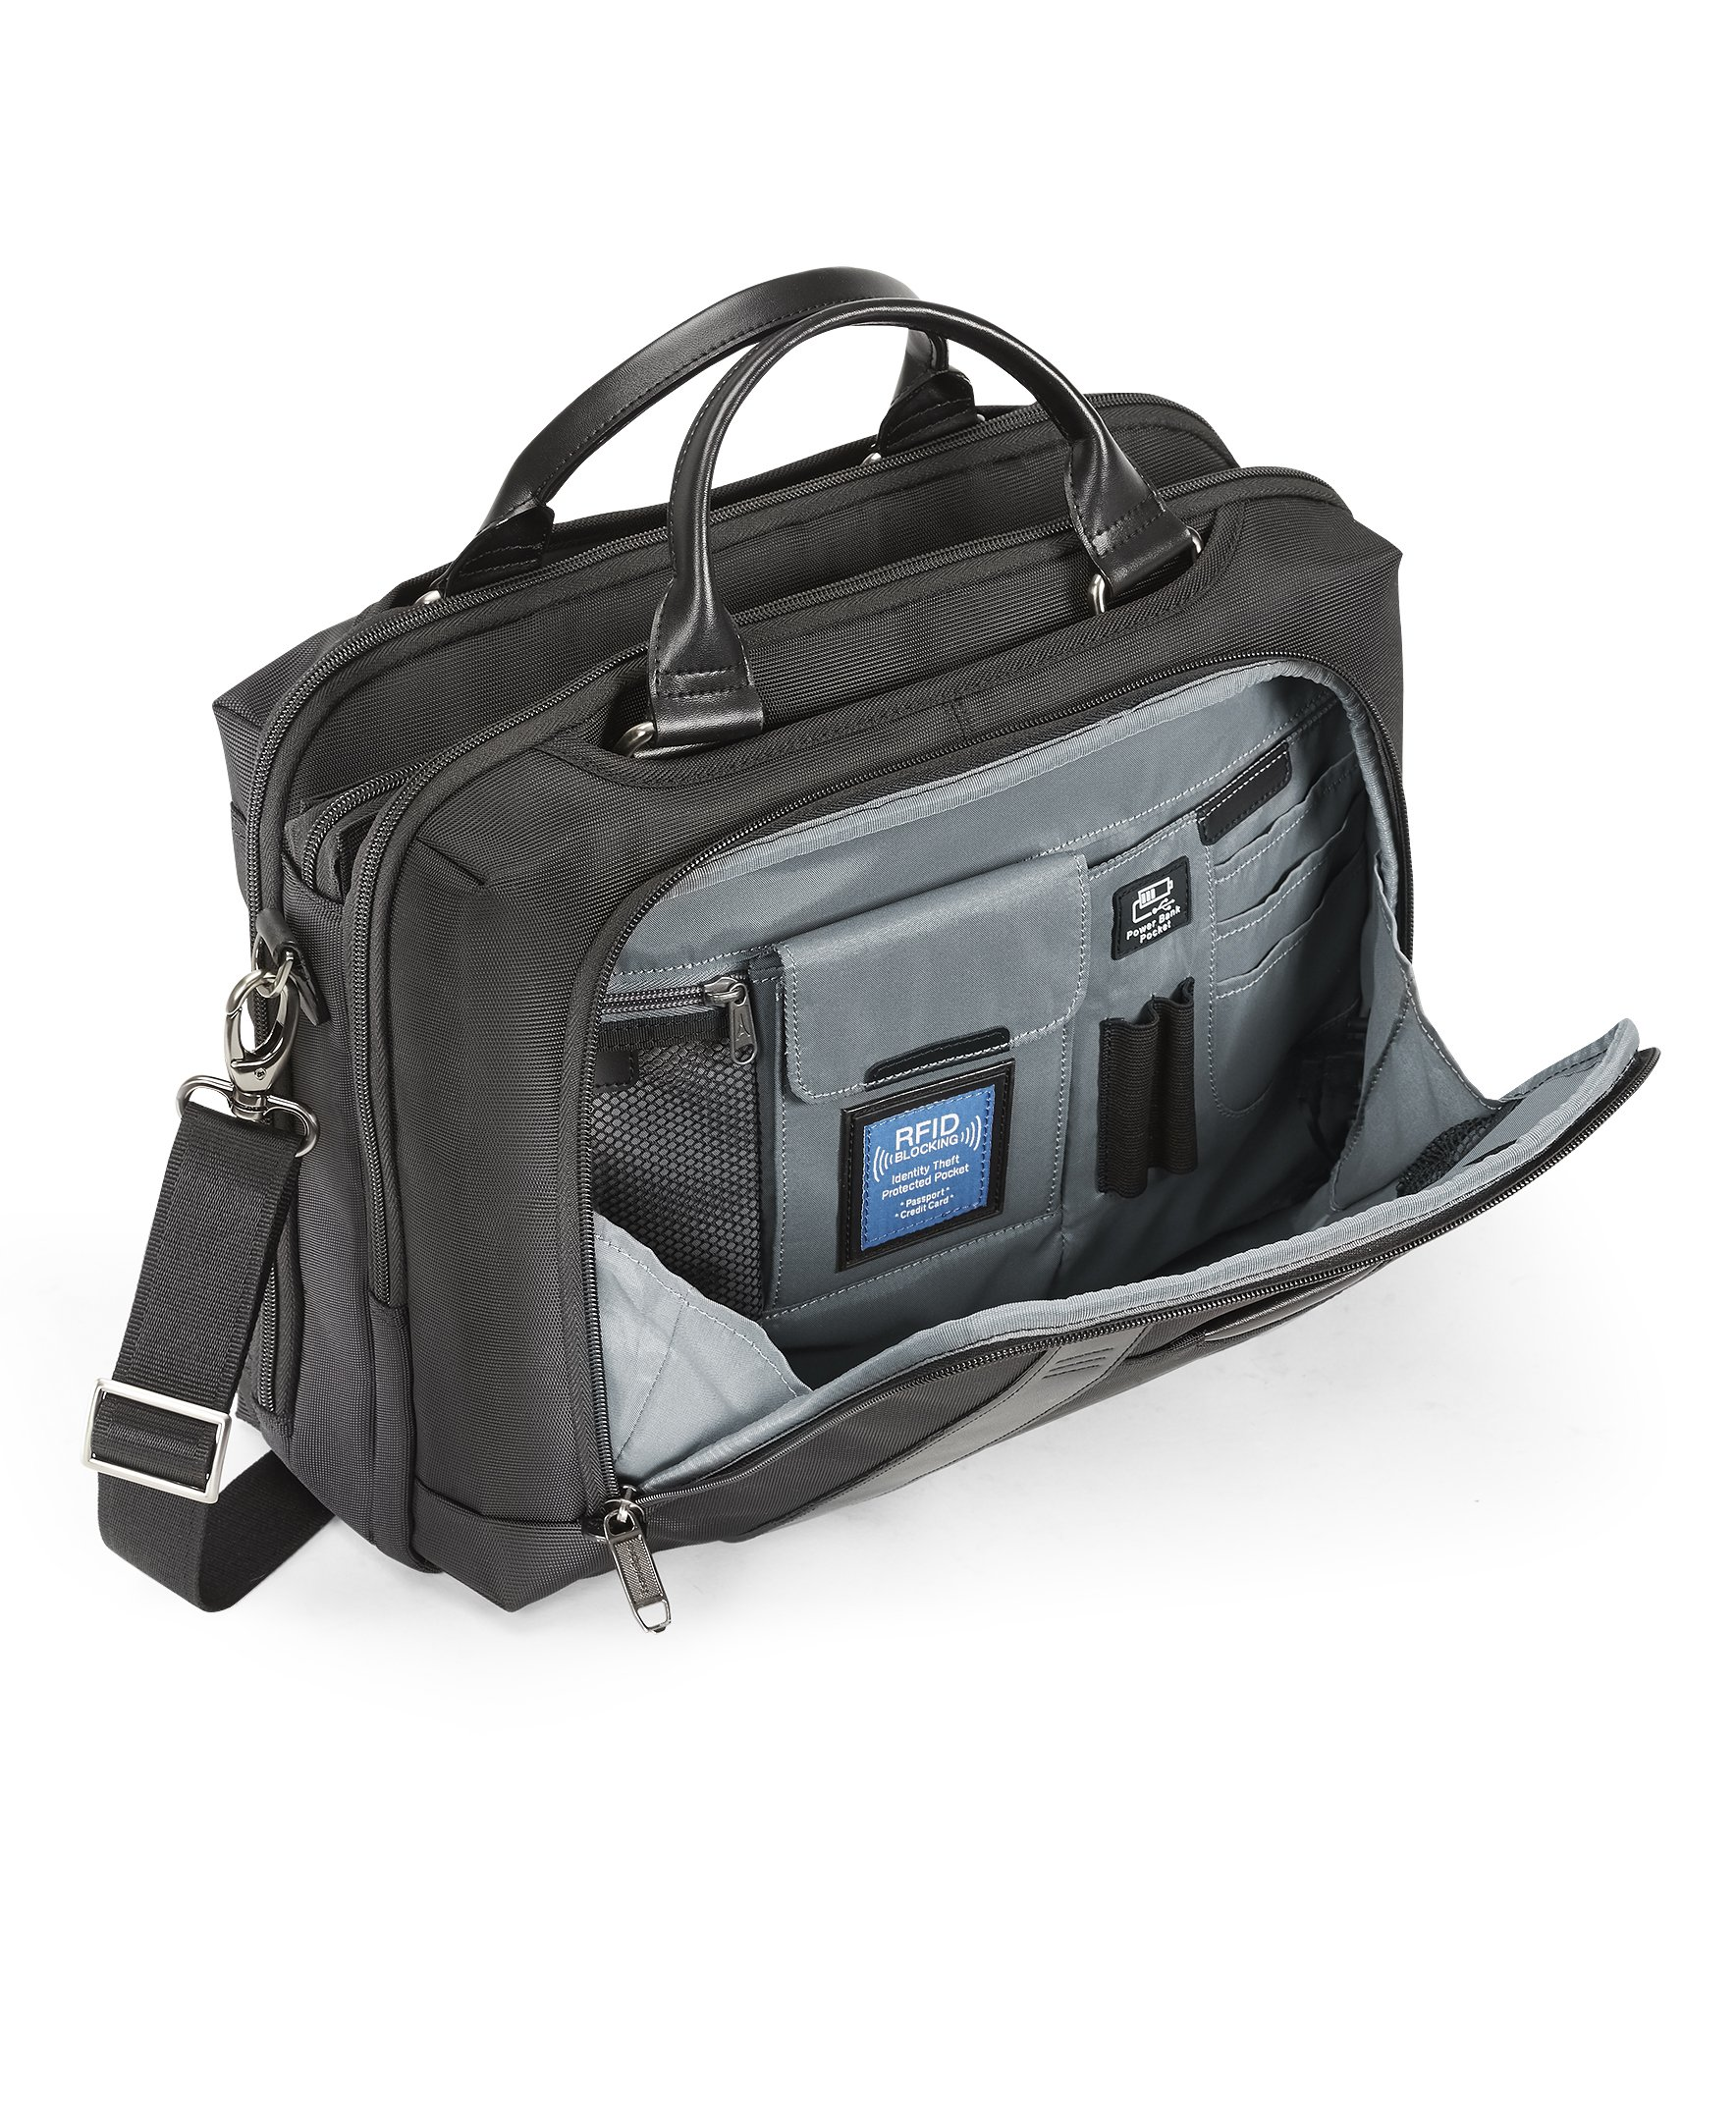 Travelpro Crew Executive Choice 2 Pilot Under-Seat Brief Bag, 16-in with USB port by Travelpro (Image #6)